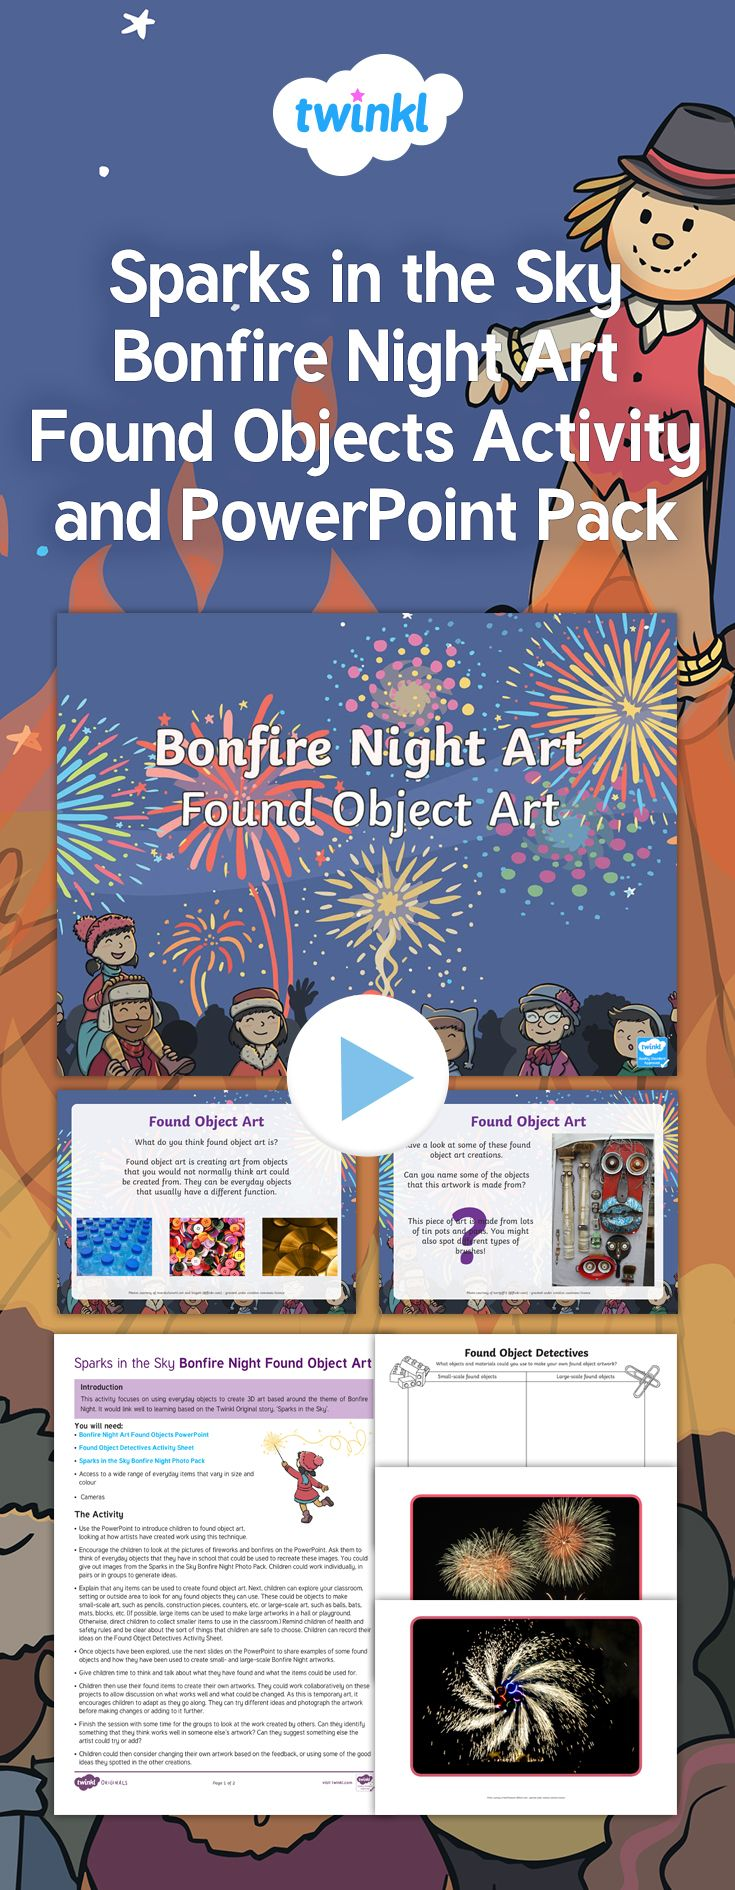 This exciting pack includes an Activity Guide, a PowerPoint, a Photo Pack and an Activity Sheet. The activity focuses on using everyday found objects to create a 3D piece of Bonfire Night art. It encourages children to investigate objects in and around the classroom that could be used to create found object art. This activity would work brilliantly with the Twinkl Original story, 'Sparks in the Sky', but can also be used alongside a Bonfire Night or Fireworks topic.